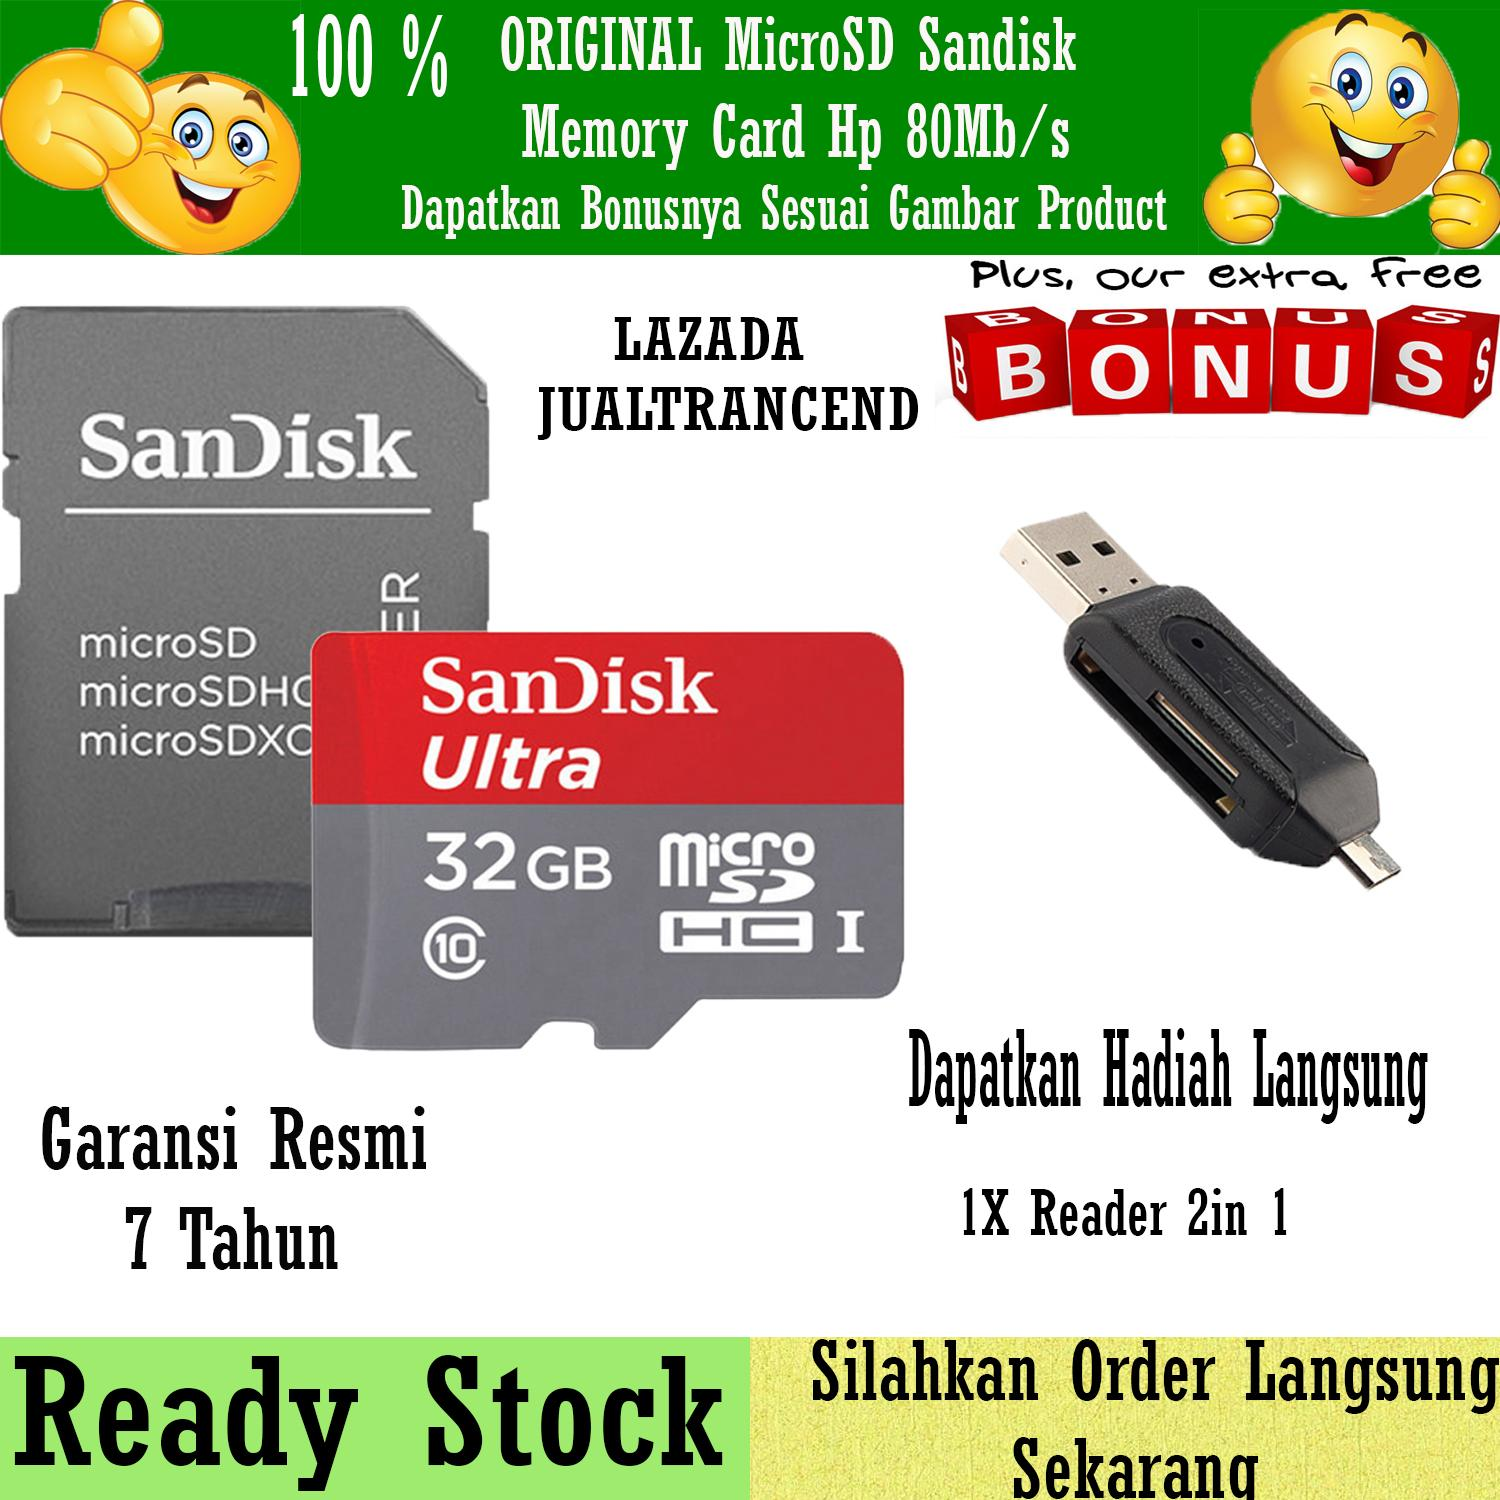 Kelebihan Sandisk Microsdhc 80mb S 32gb Class 10 Uhs 1 With Micro 16gb Sd Ultra Sdhc I Memory Card Hp